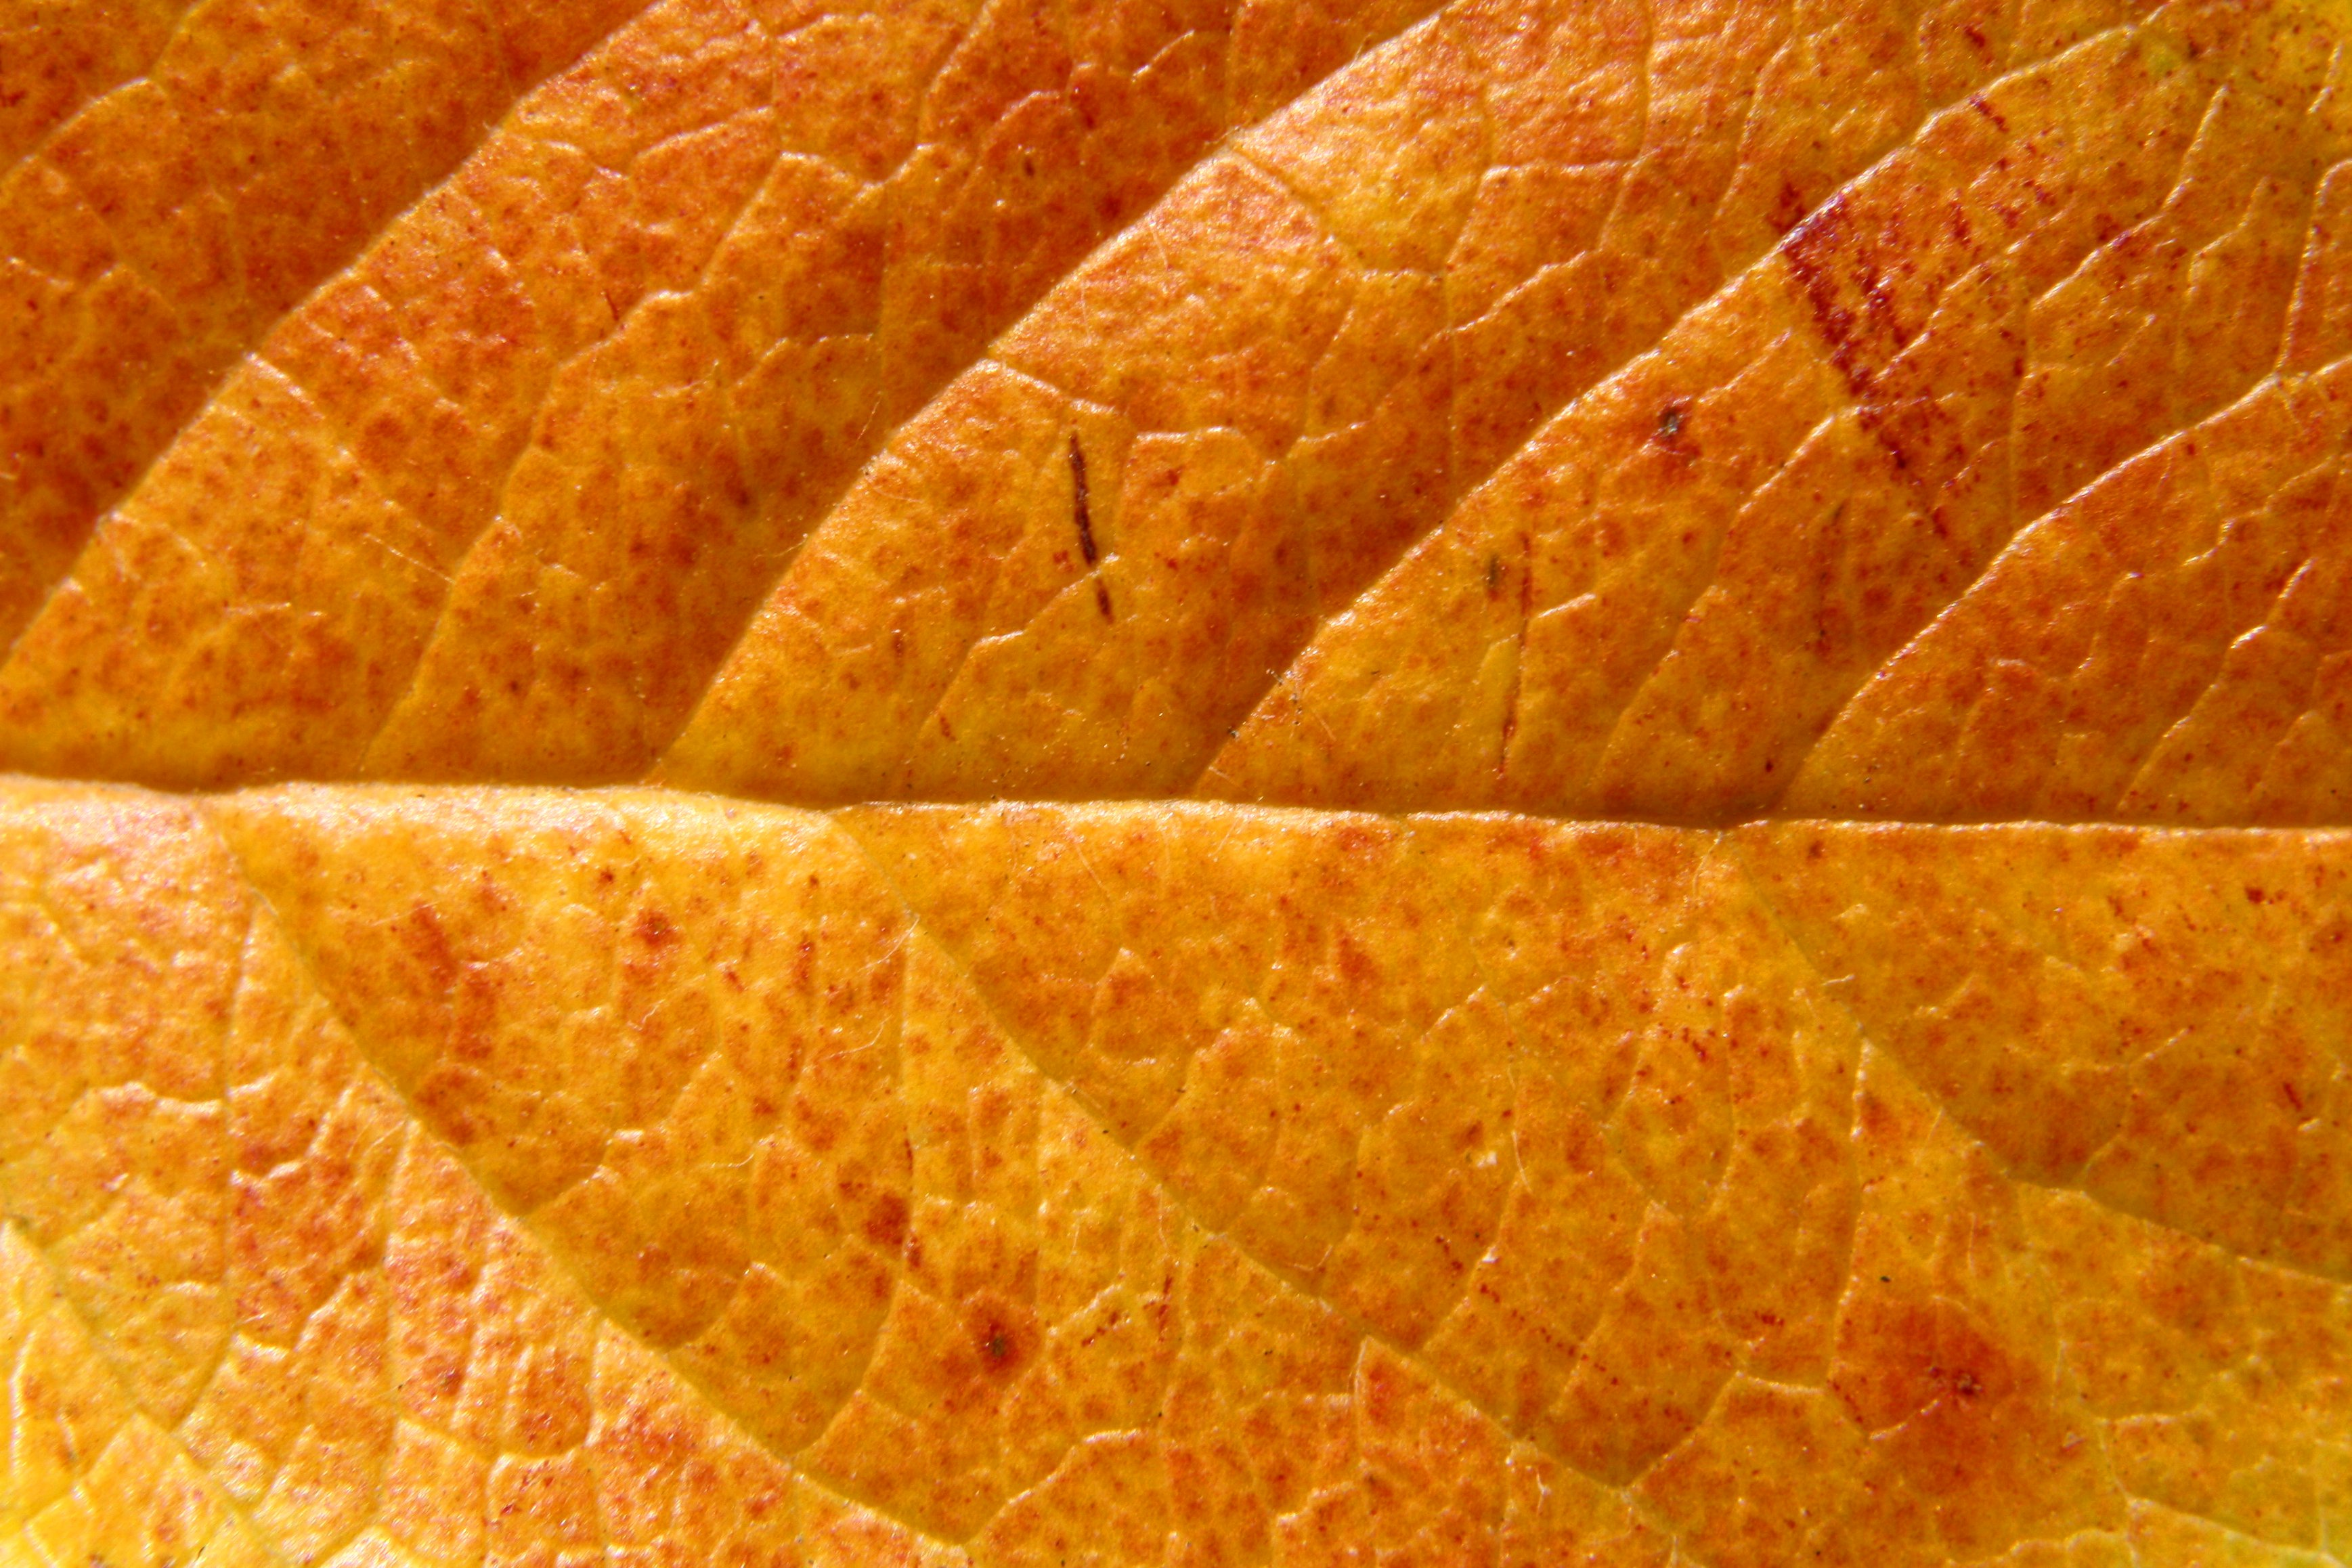 autumn leaf texture background image